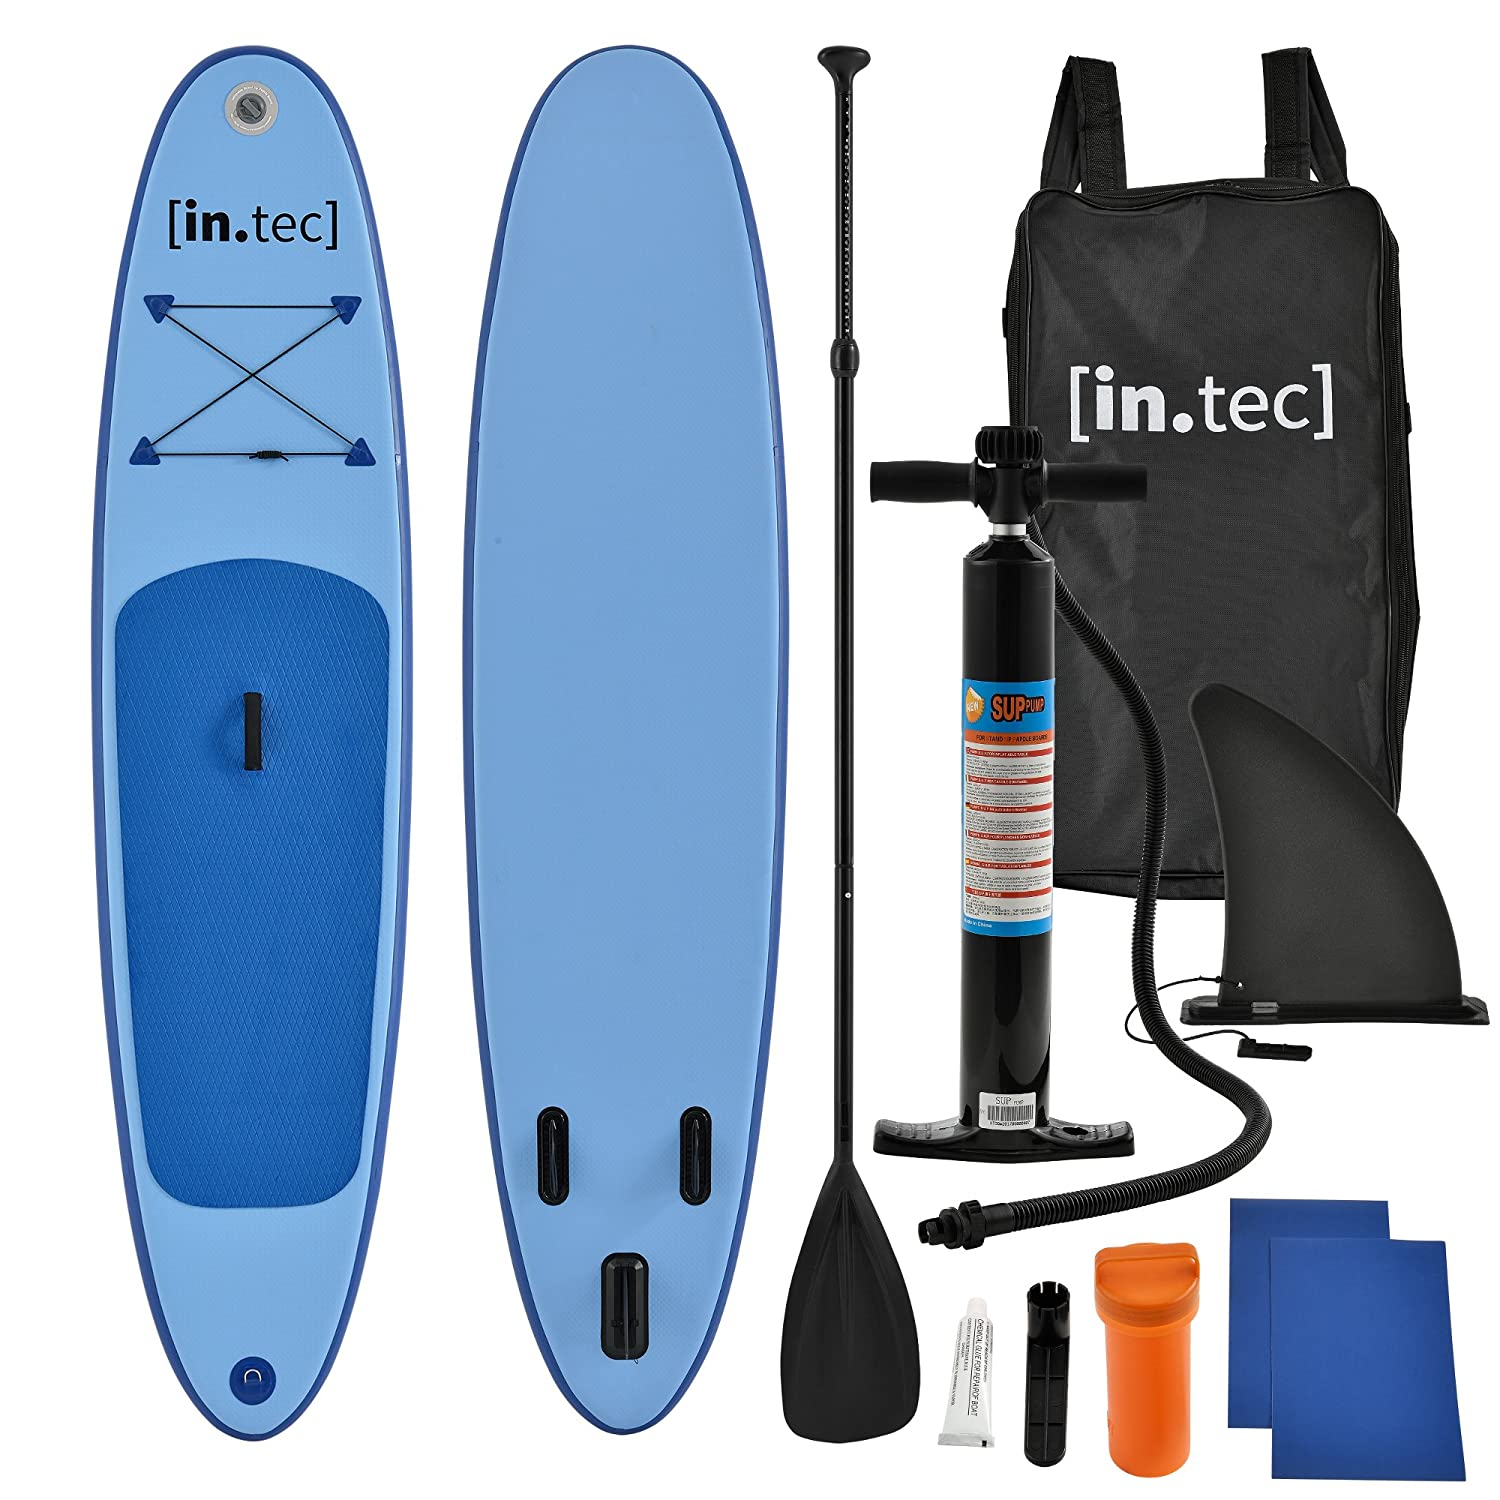 [in.tec] Tabla de Surf Hinchable remar de pie Paddle Board 305 x 71 x 10cm Tabla de Sup de Aluminio con Remo y Bomba - en 3 Colores - Rojo, Turquesa, ...